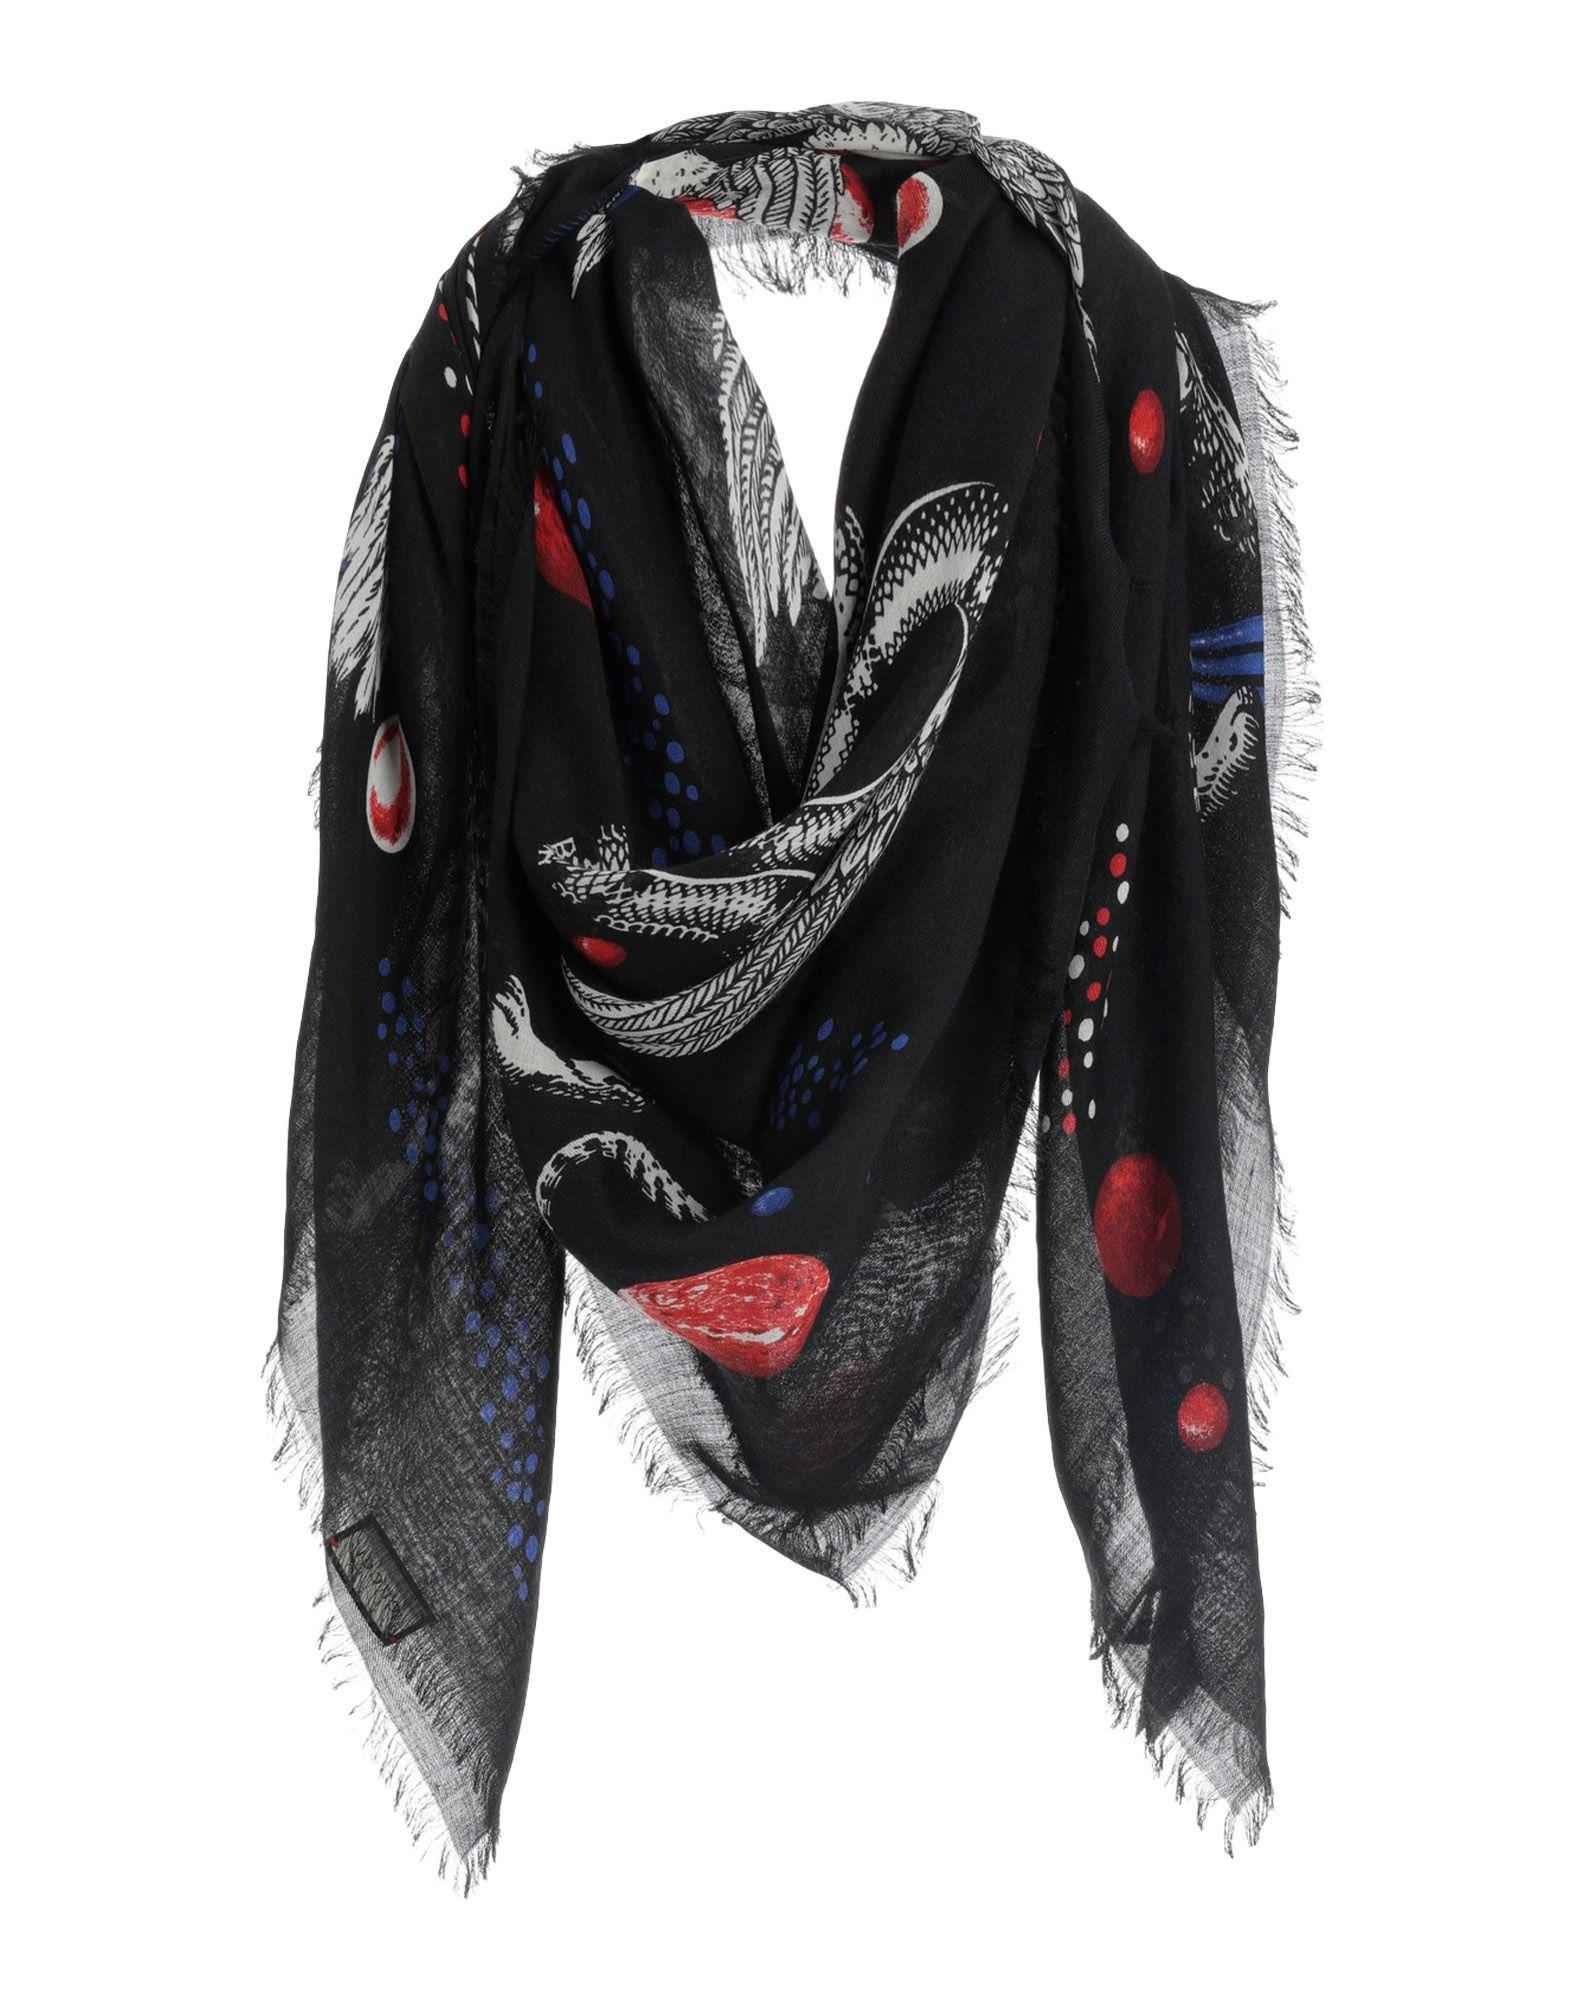 5ecbbed0b70 Lyst - Gucci Square Scarf in Black for Men